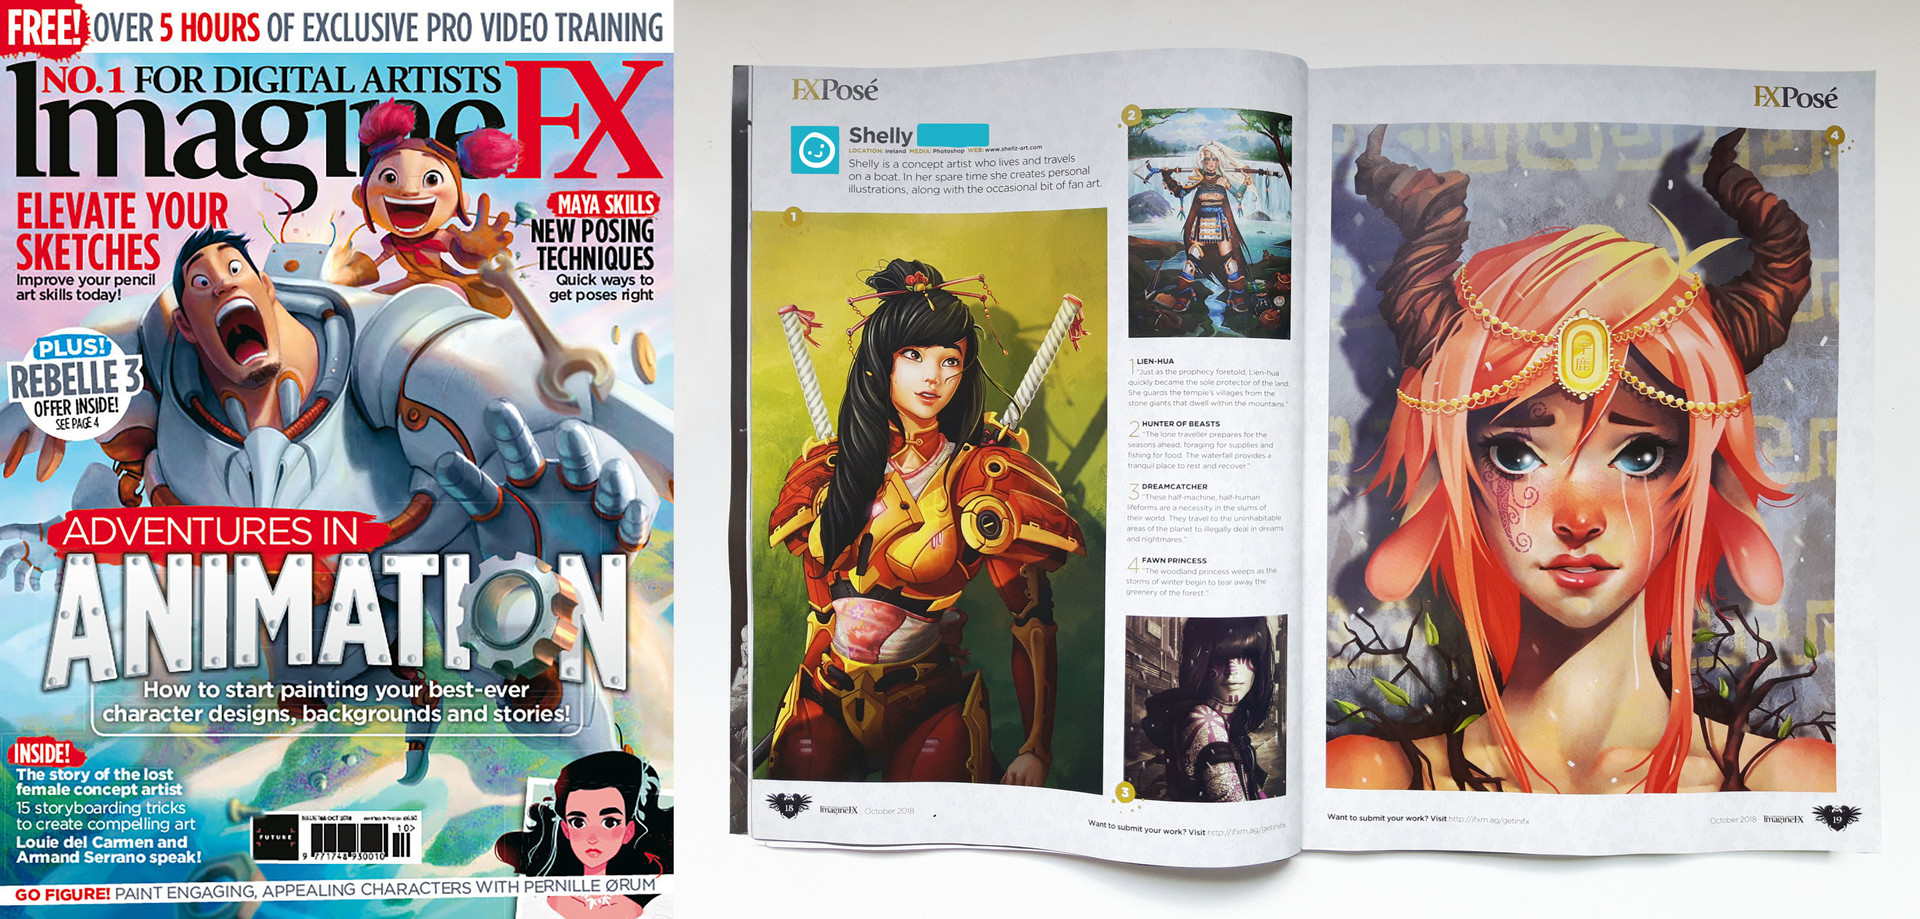 Shellz art published in imaginefx